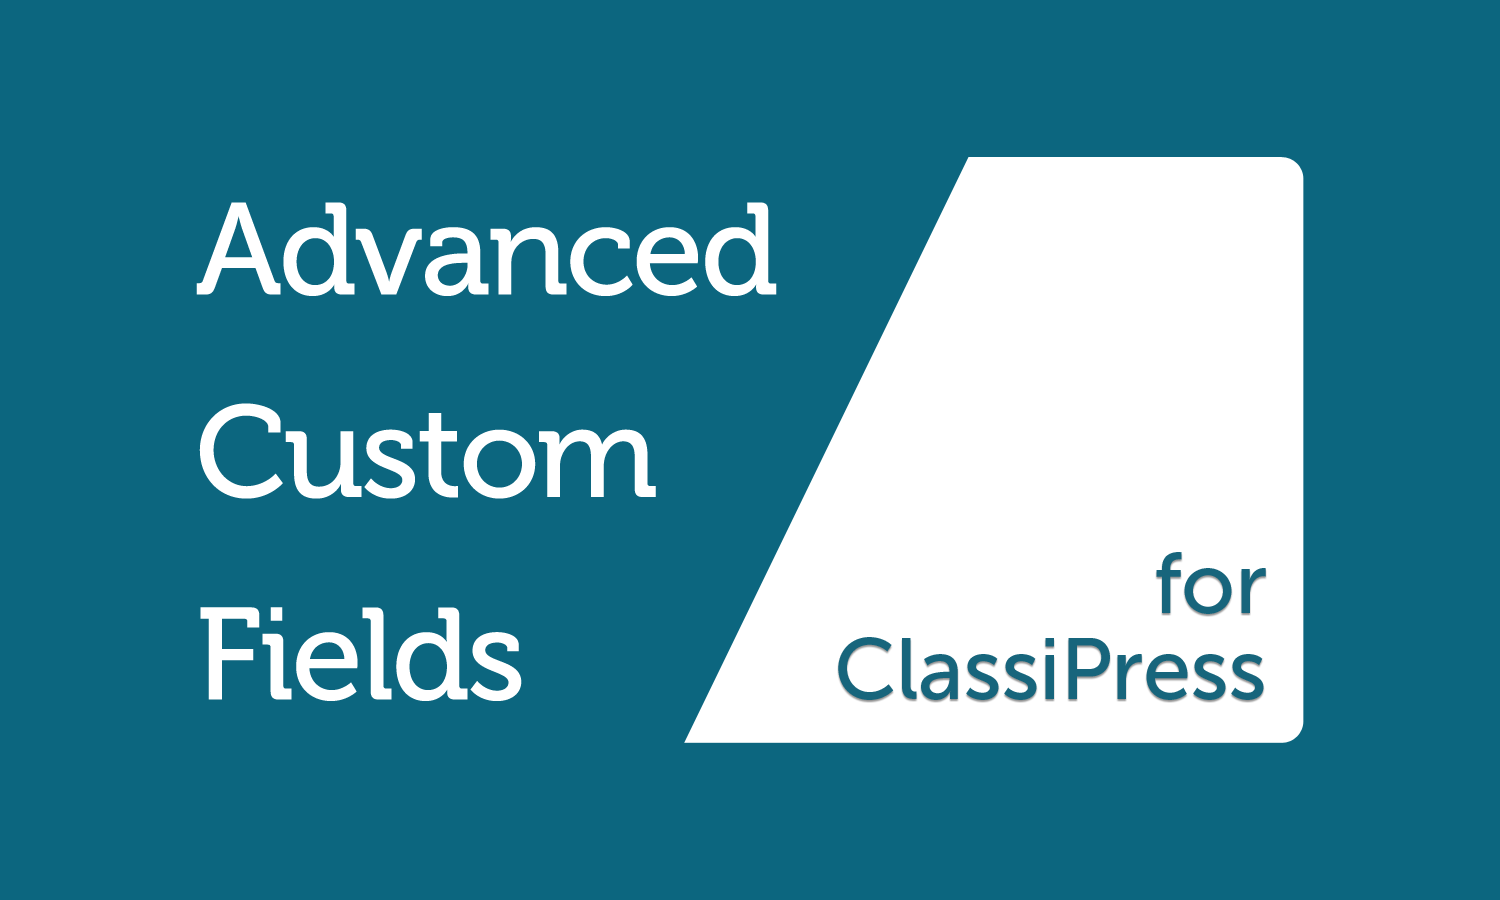 Advanced Custom Fields ClassiPress Plugin